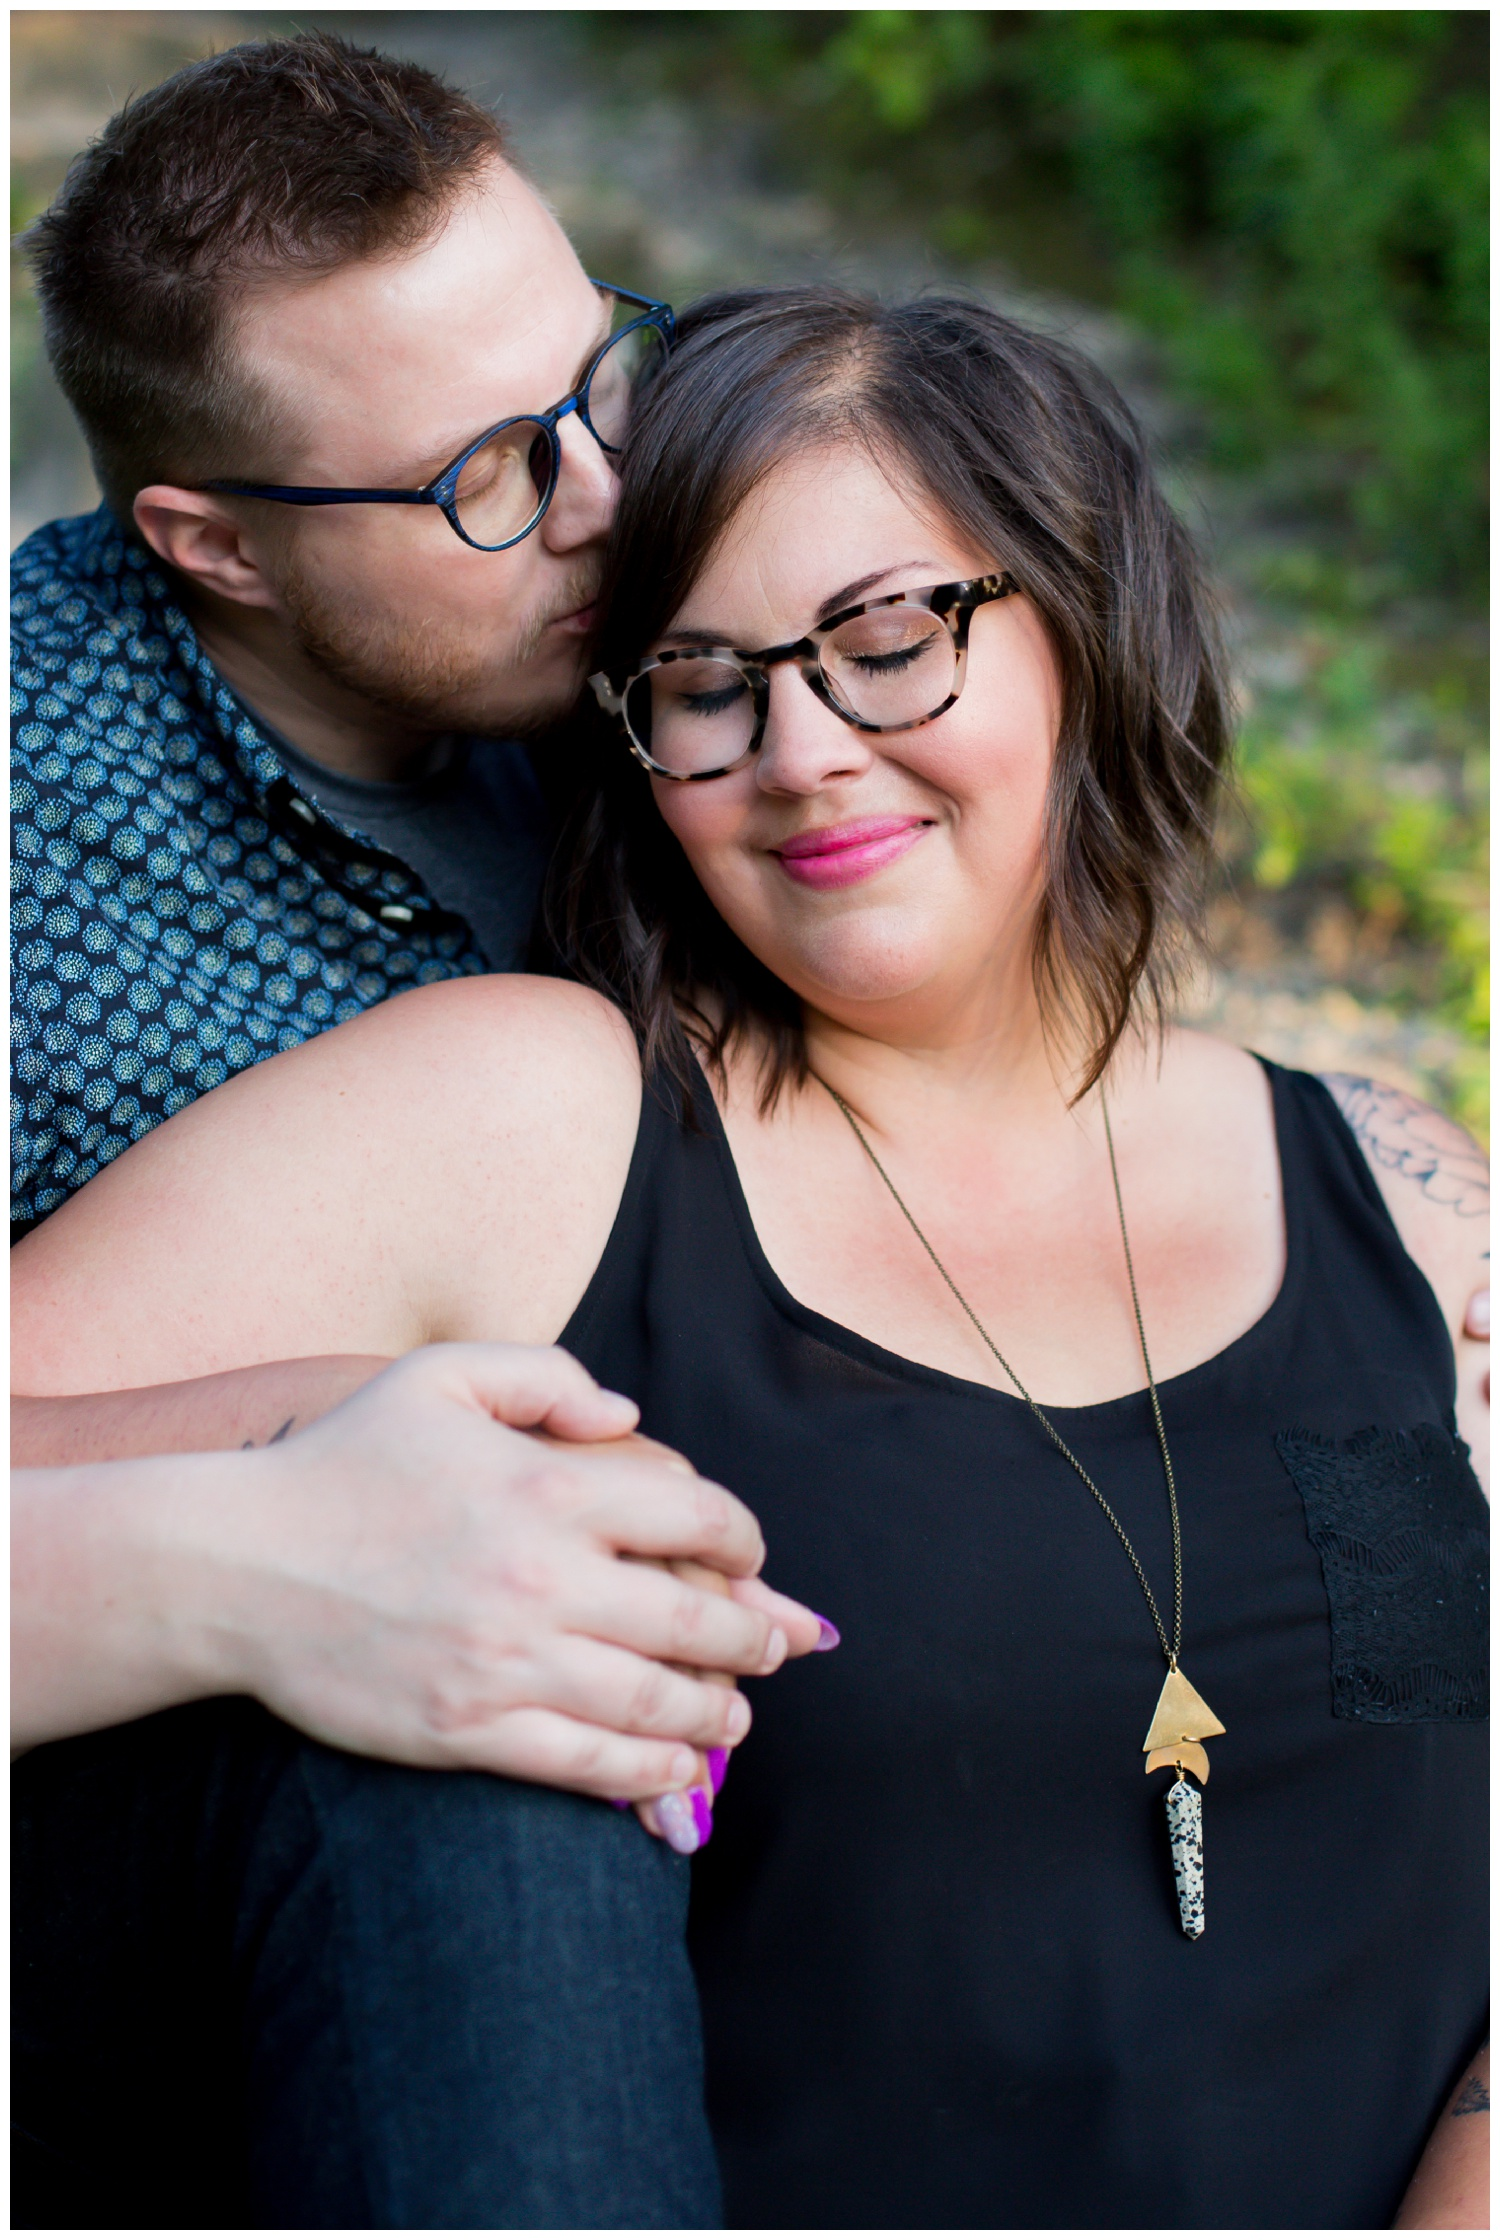 Kate-Alison-Photography-Caitlin-Tom-St-Paul-Couples-Session-54.jpg